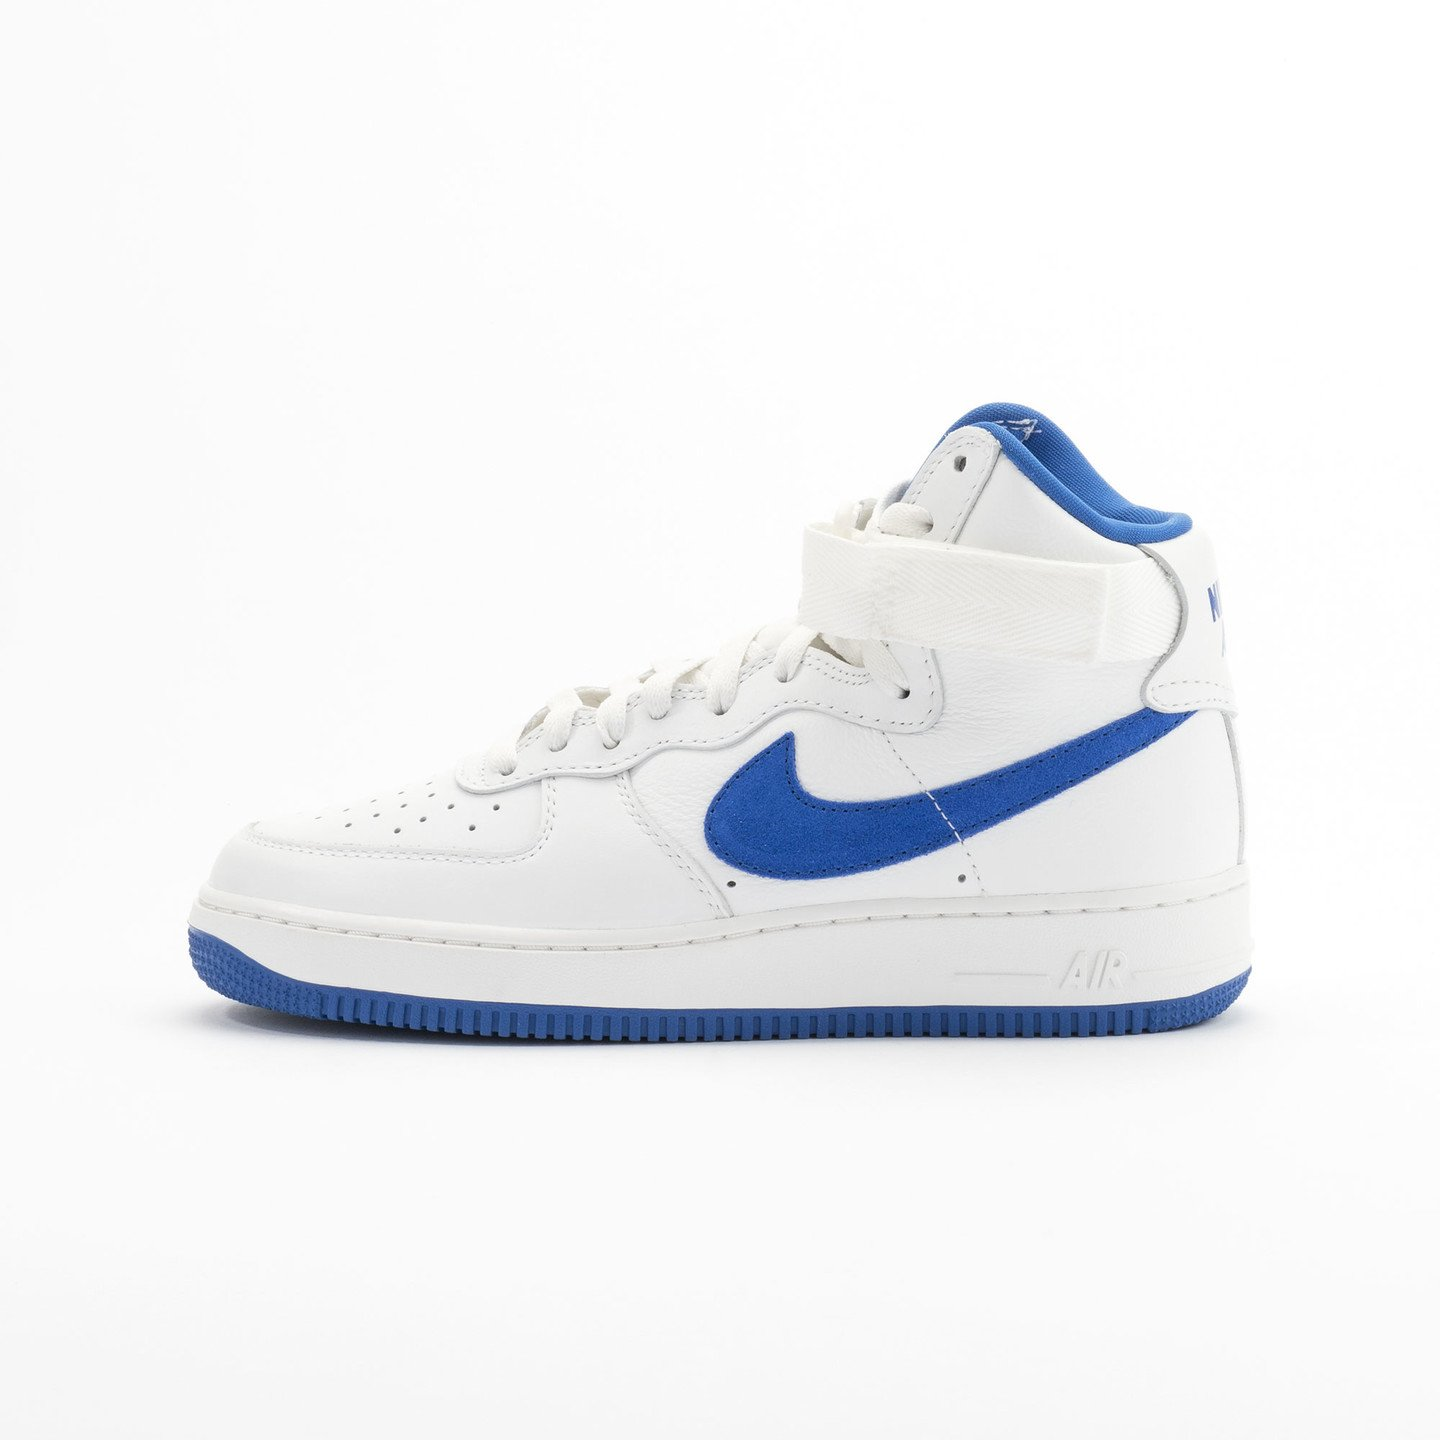 Nike Air Force 1 Hi Retro OG QS Summit White - Game Royal 743546-103-42.5